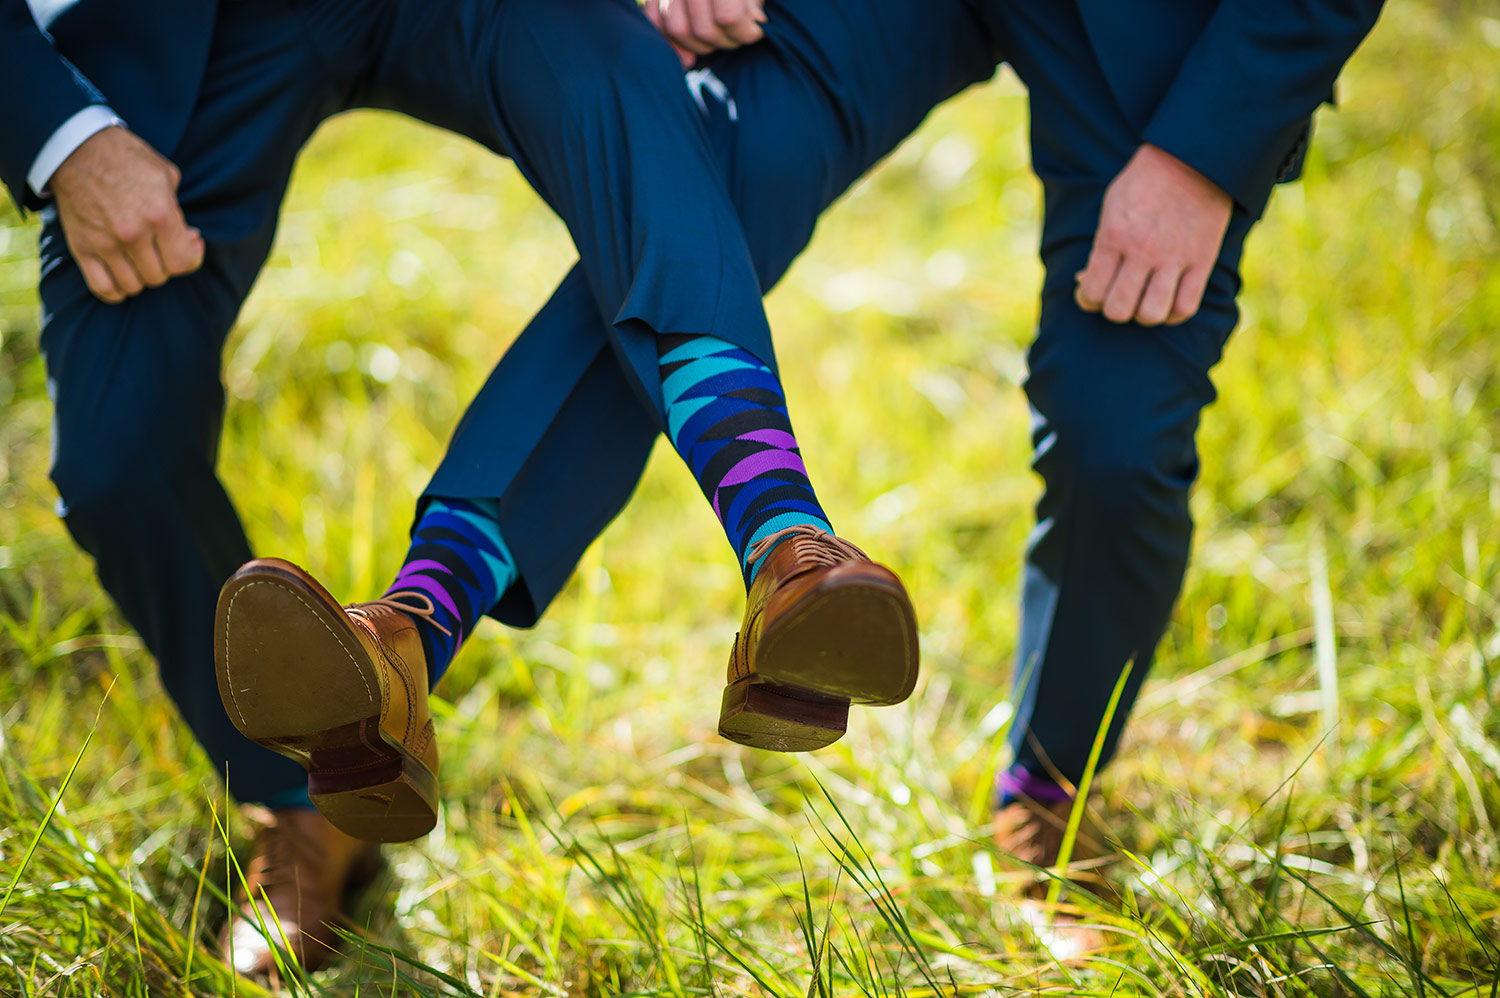 Groom and Groomsmen's socks during a Whidbey Island wedding at Comforts Winery